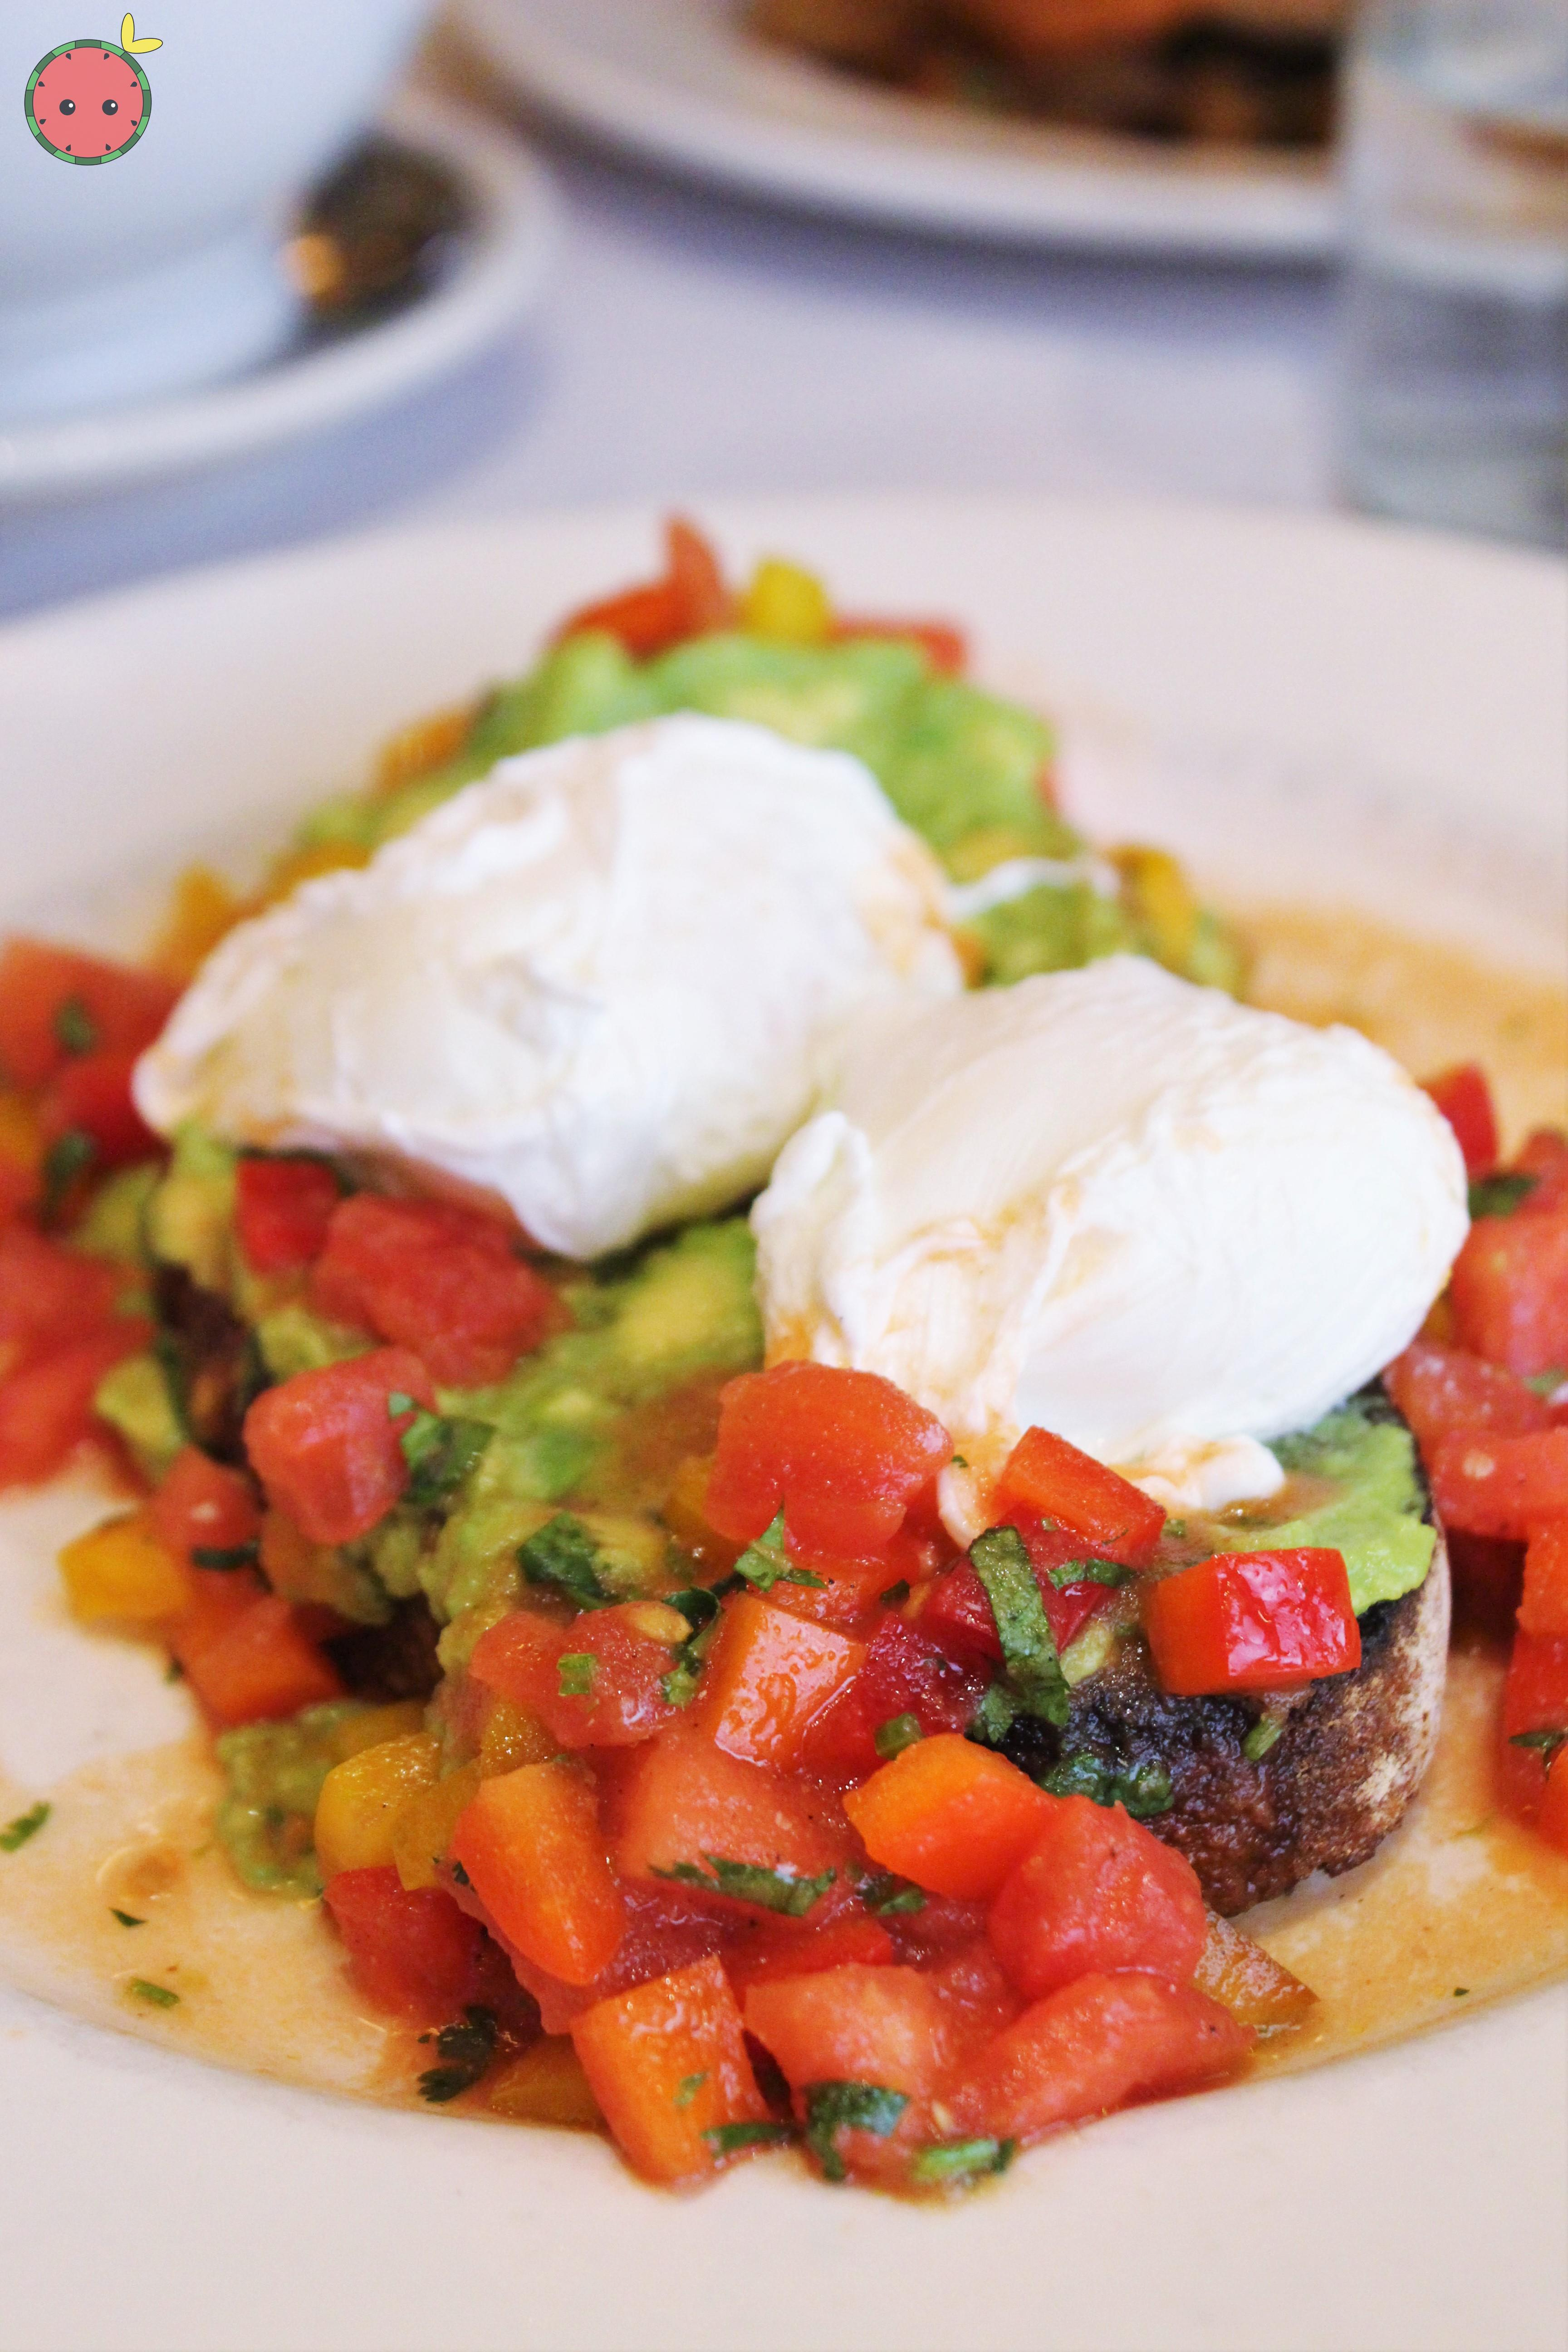 Avocado and poached eggs on toast with tomato-jalapeño salsa